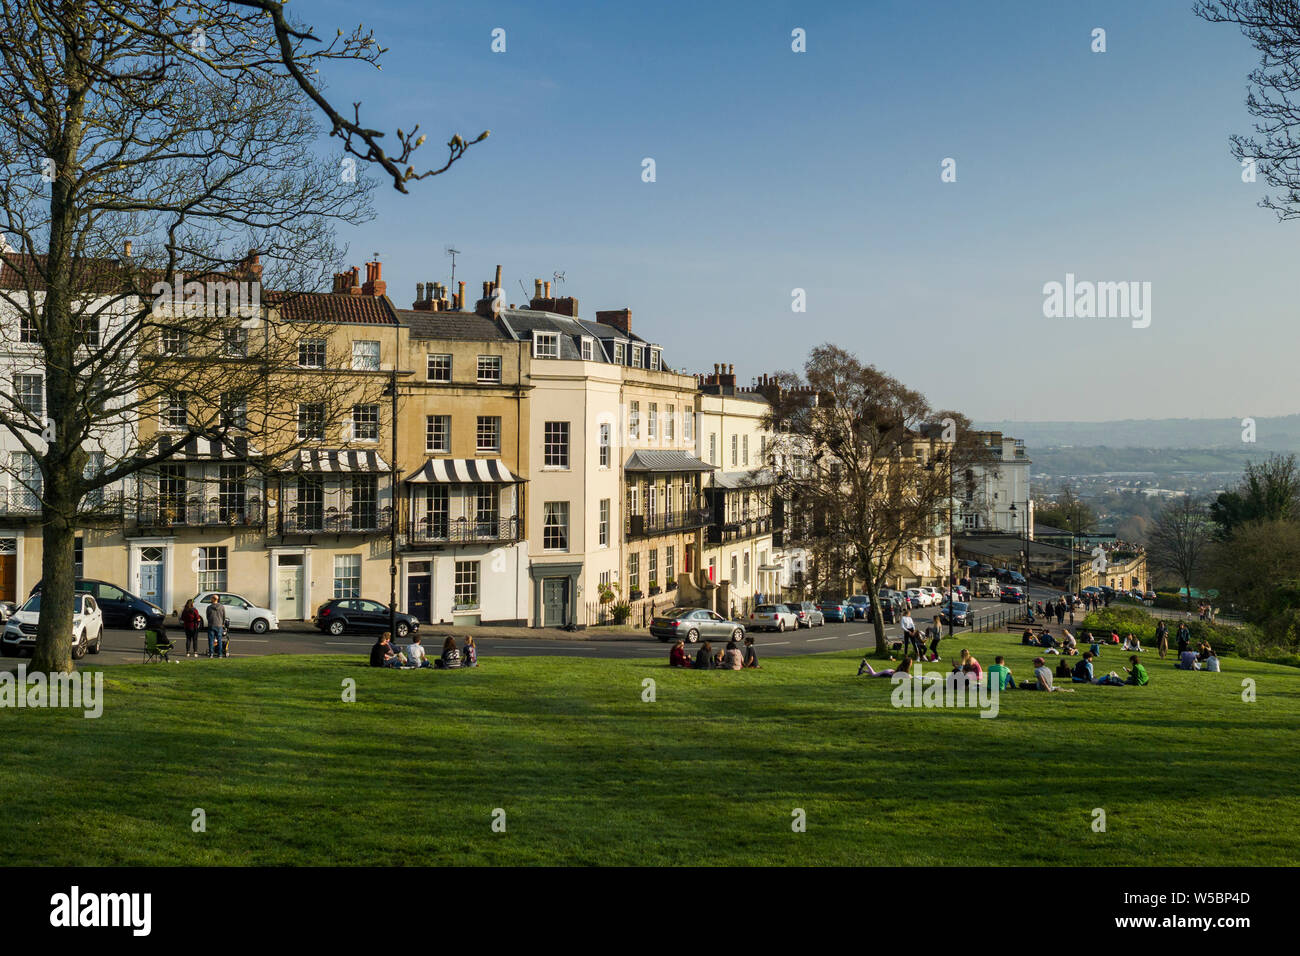 People relaxing and enjoying the green space of SIon Hill alongside Clifton Suspension Bridge and the Georgian properties of Clifton village, Bristol, Stock Photo